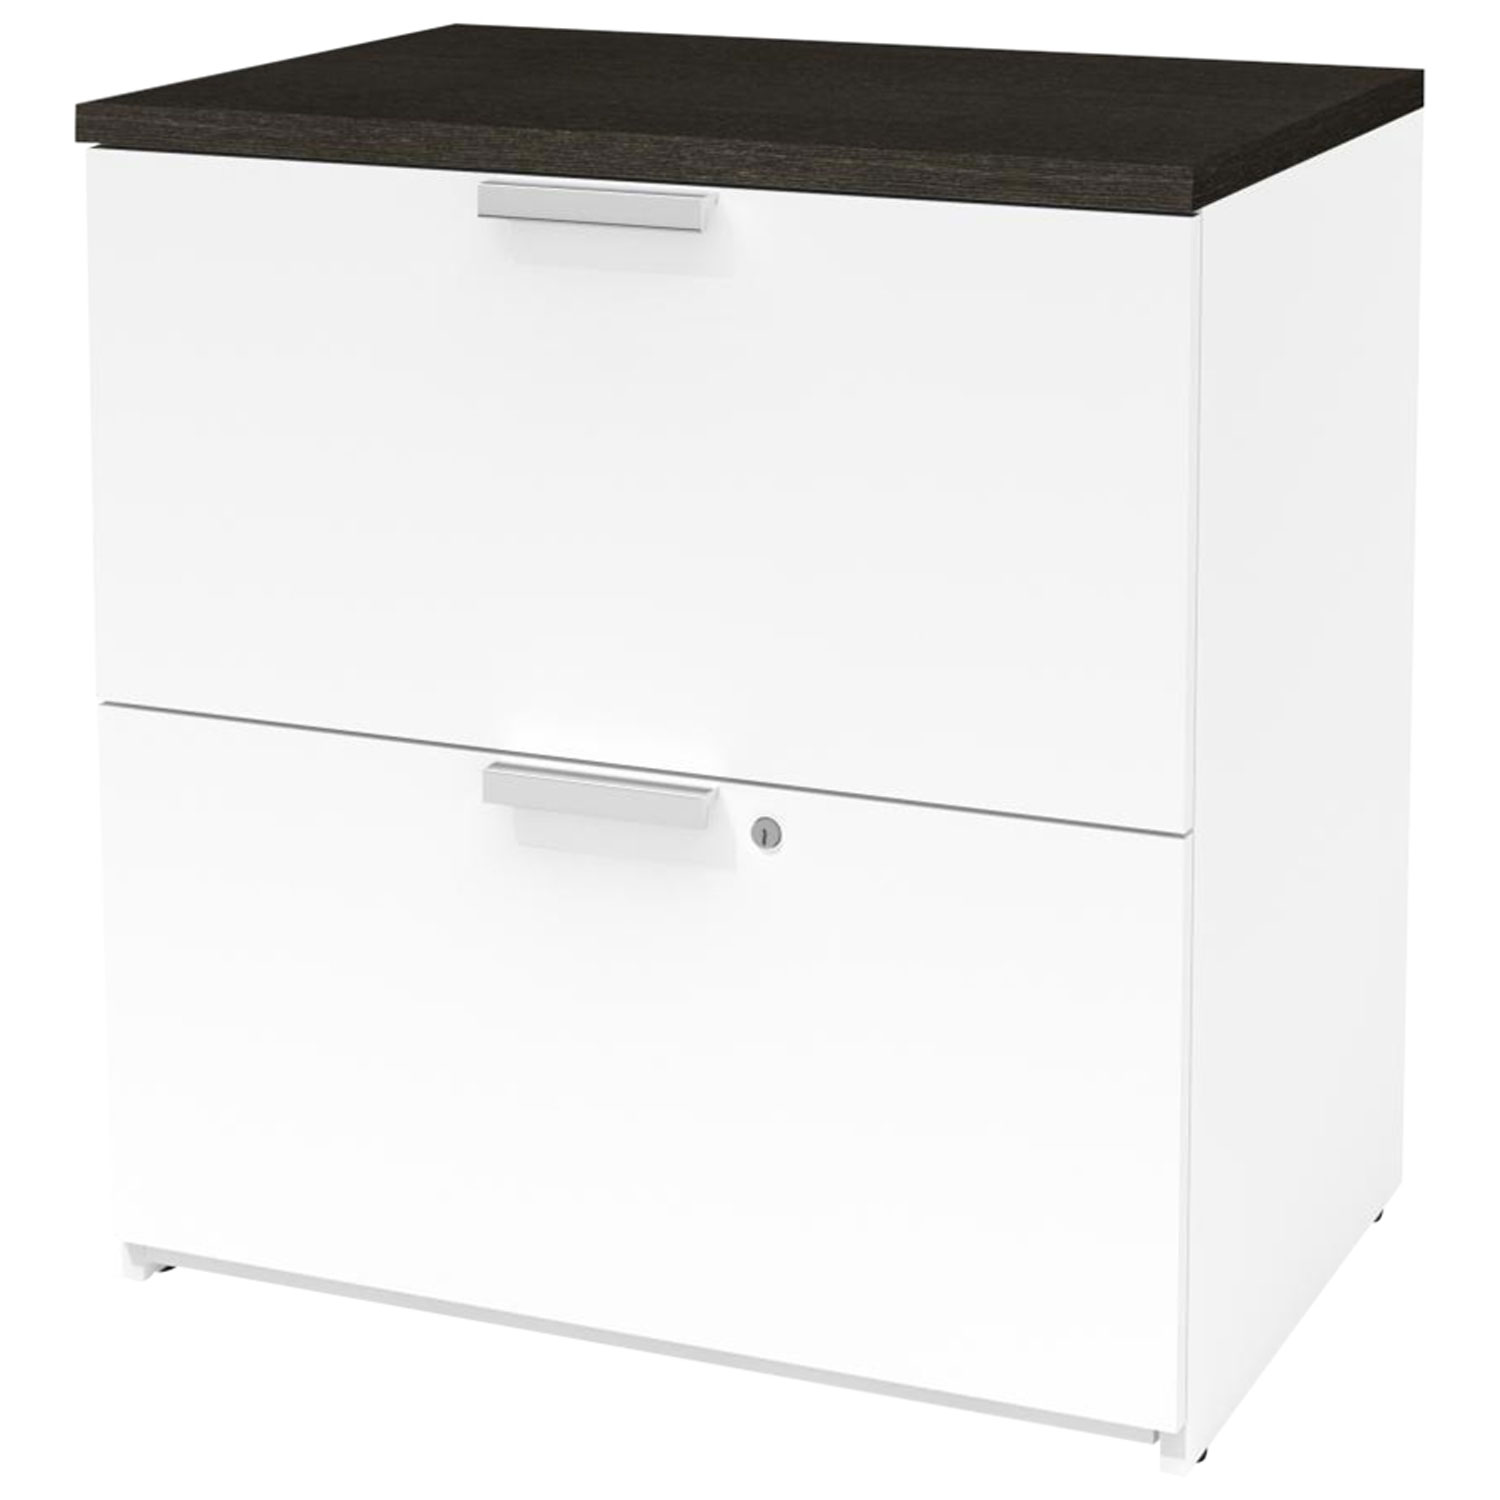 Image of: Pro Concept Plus 2 Drawer Lateral File Cabinet White Deep Grey Best Buy Canada